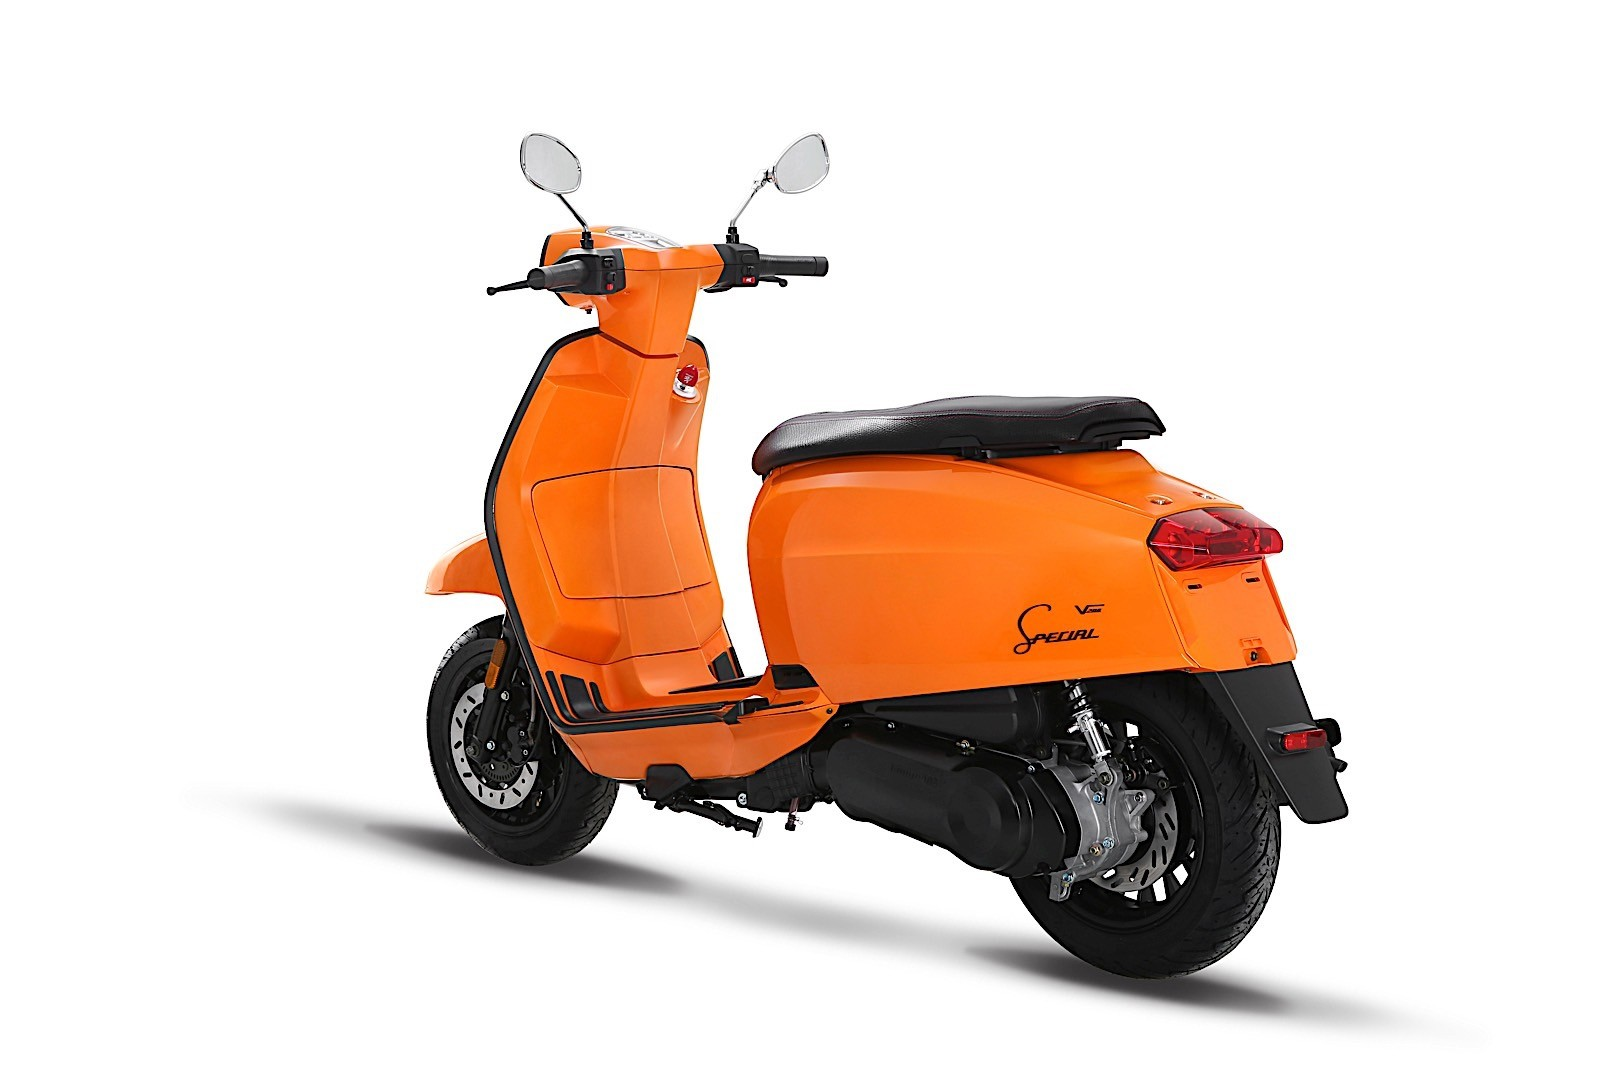 This Is Lambretta's New 2018 V-Special Scooter